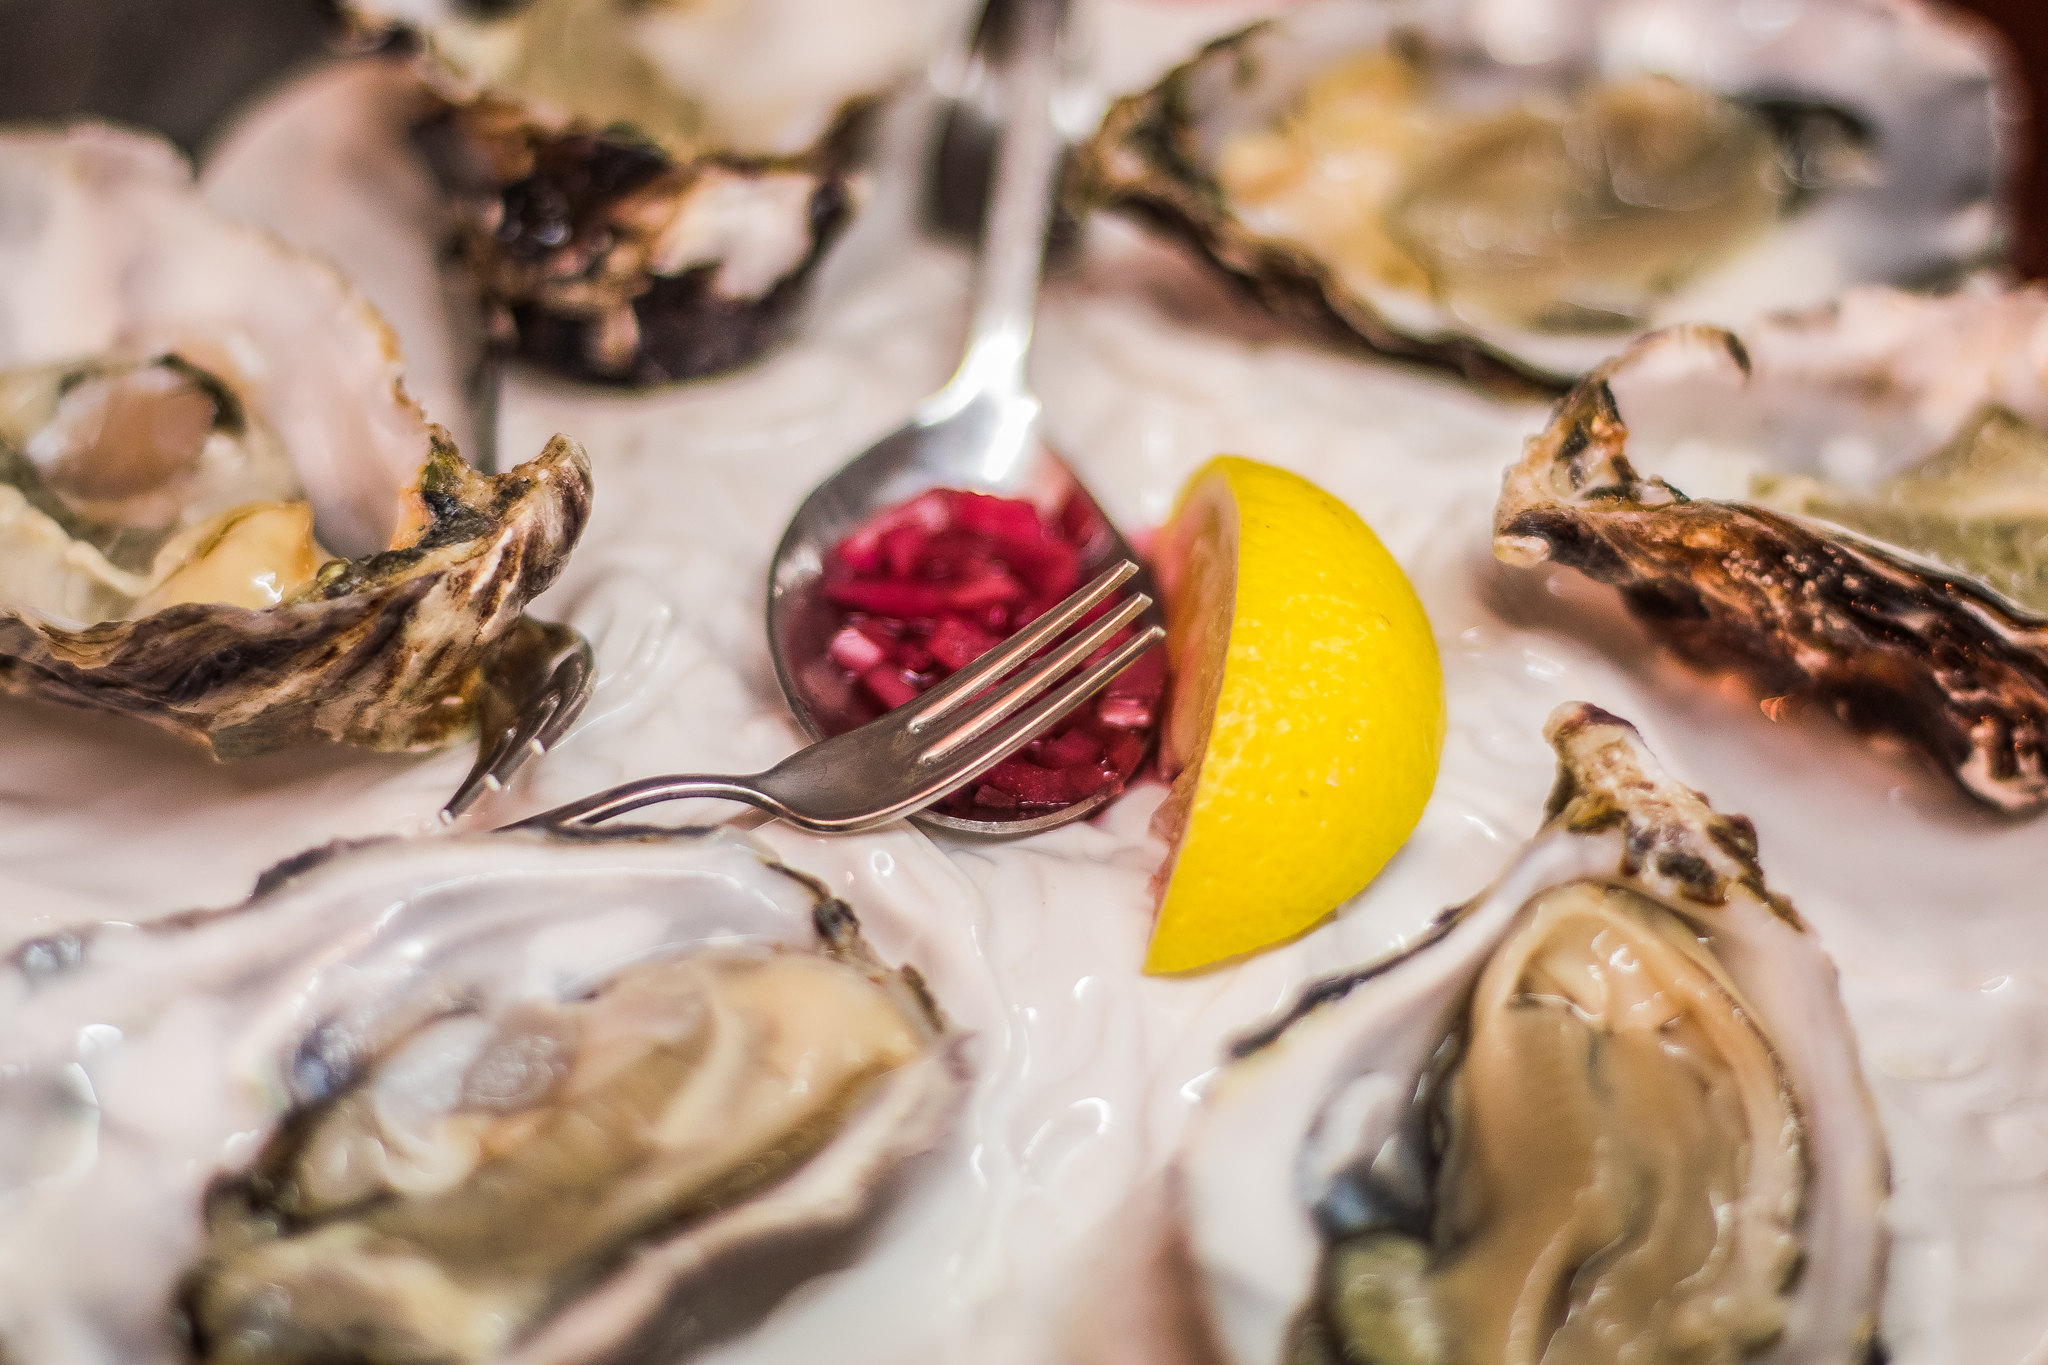 Oyster and Chop House Restaurants in Herne Bay